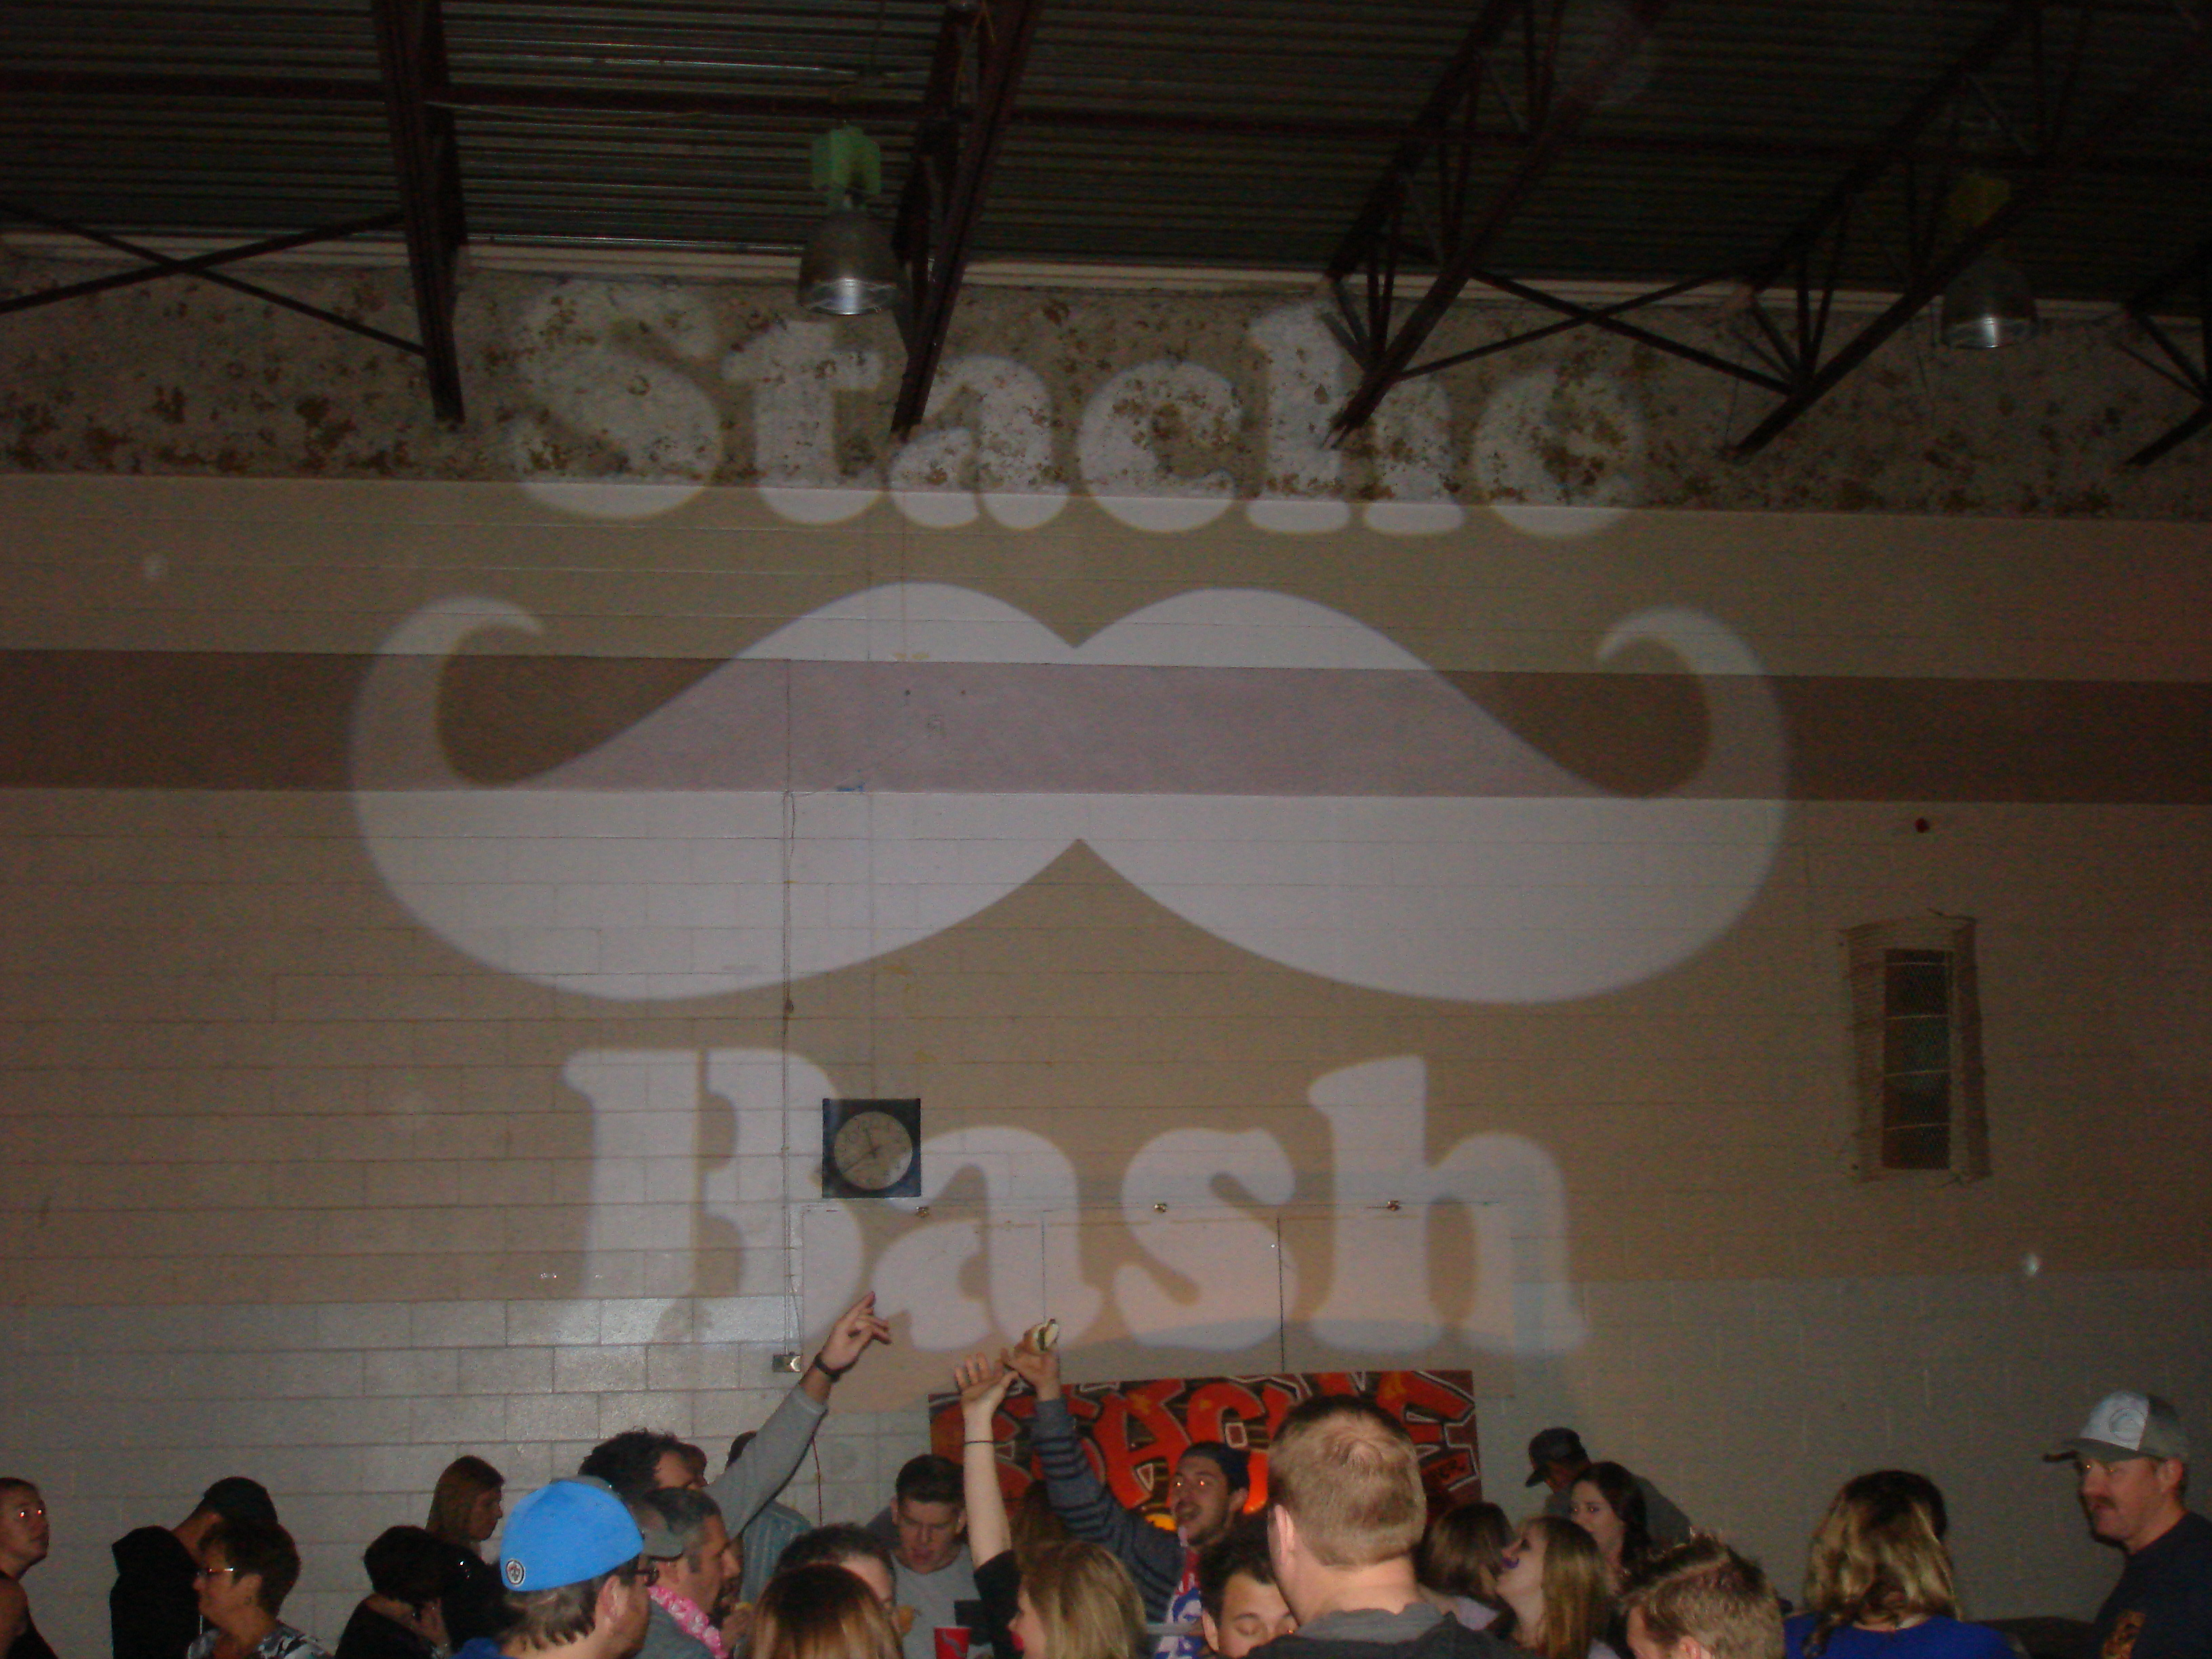 StacheBash Bat Light